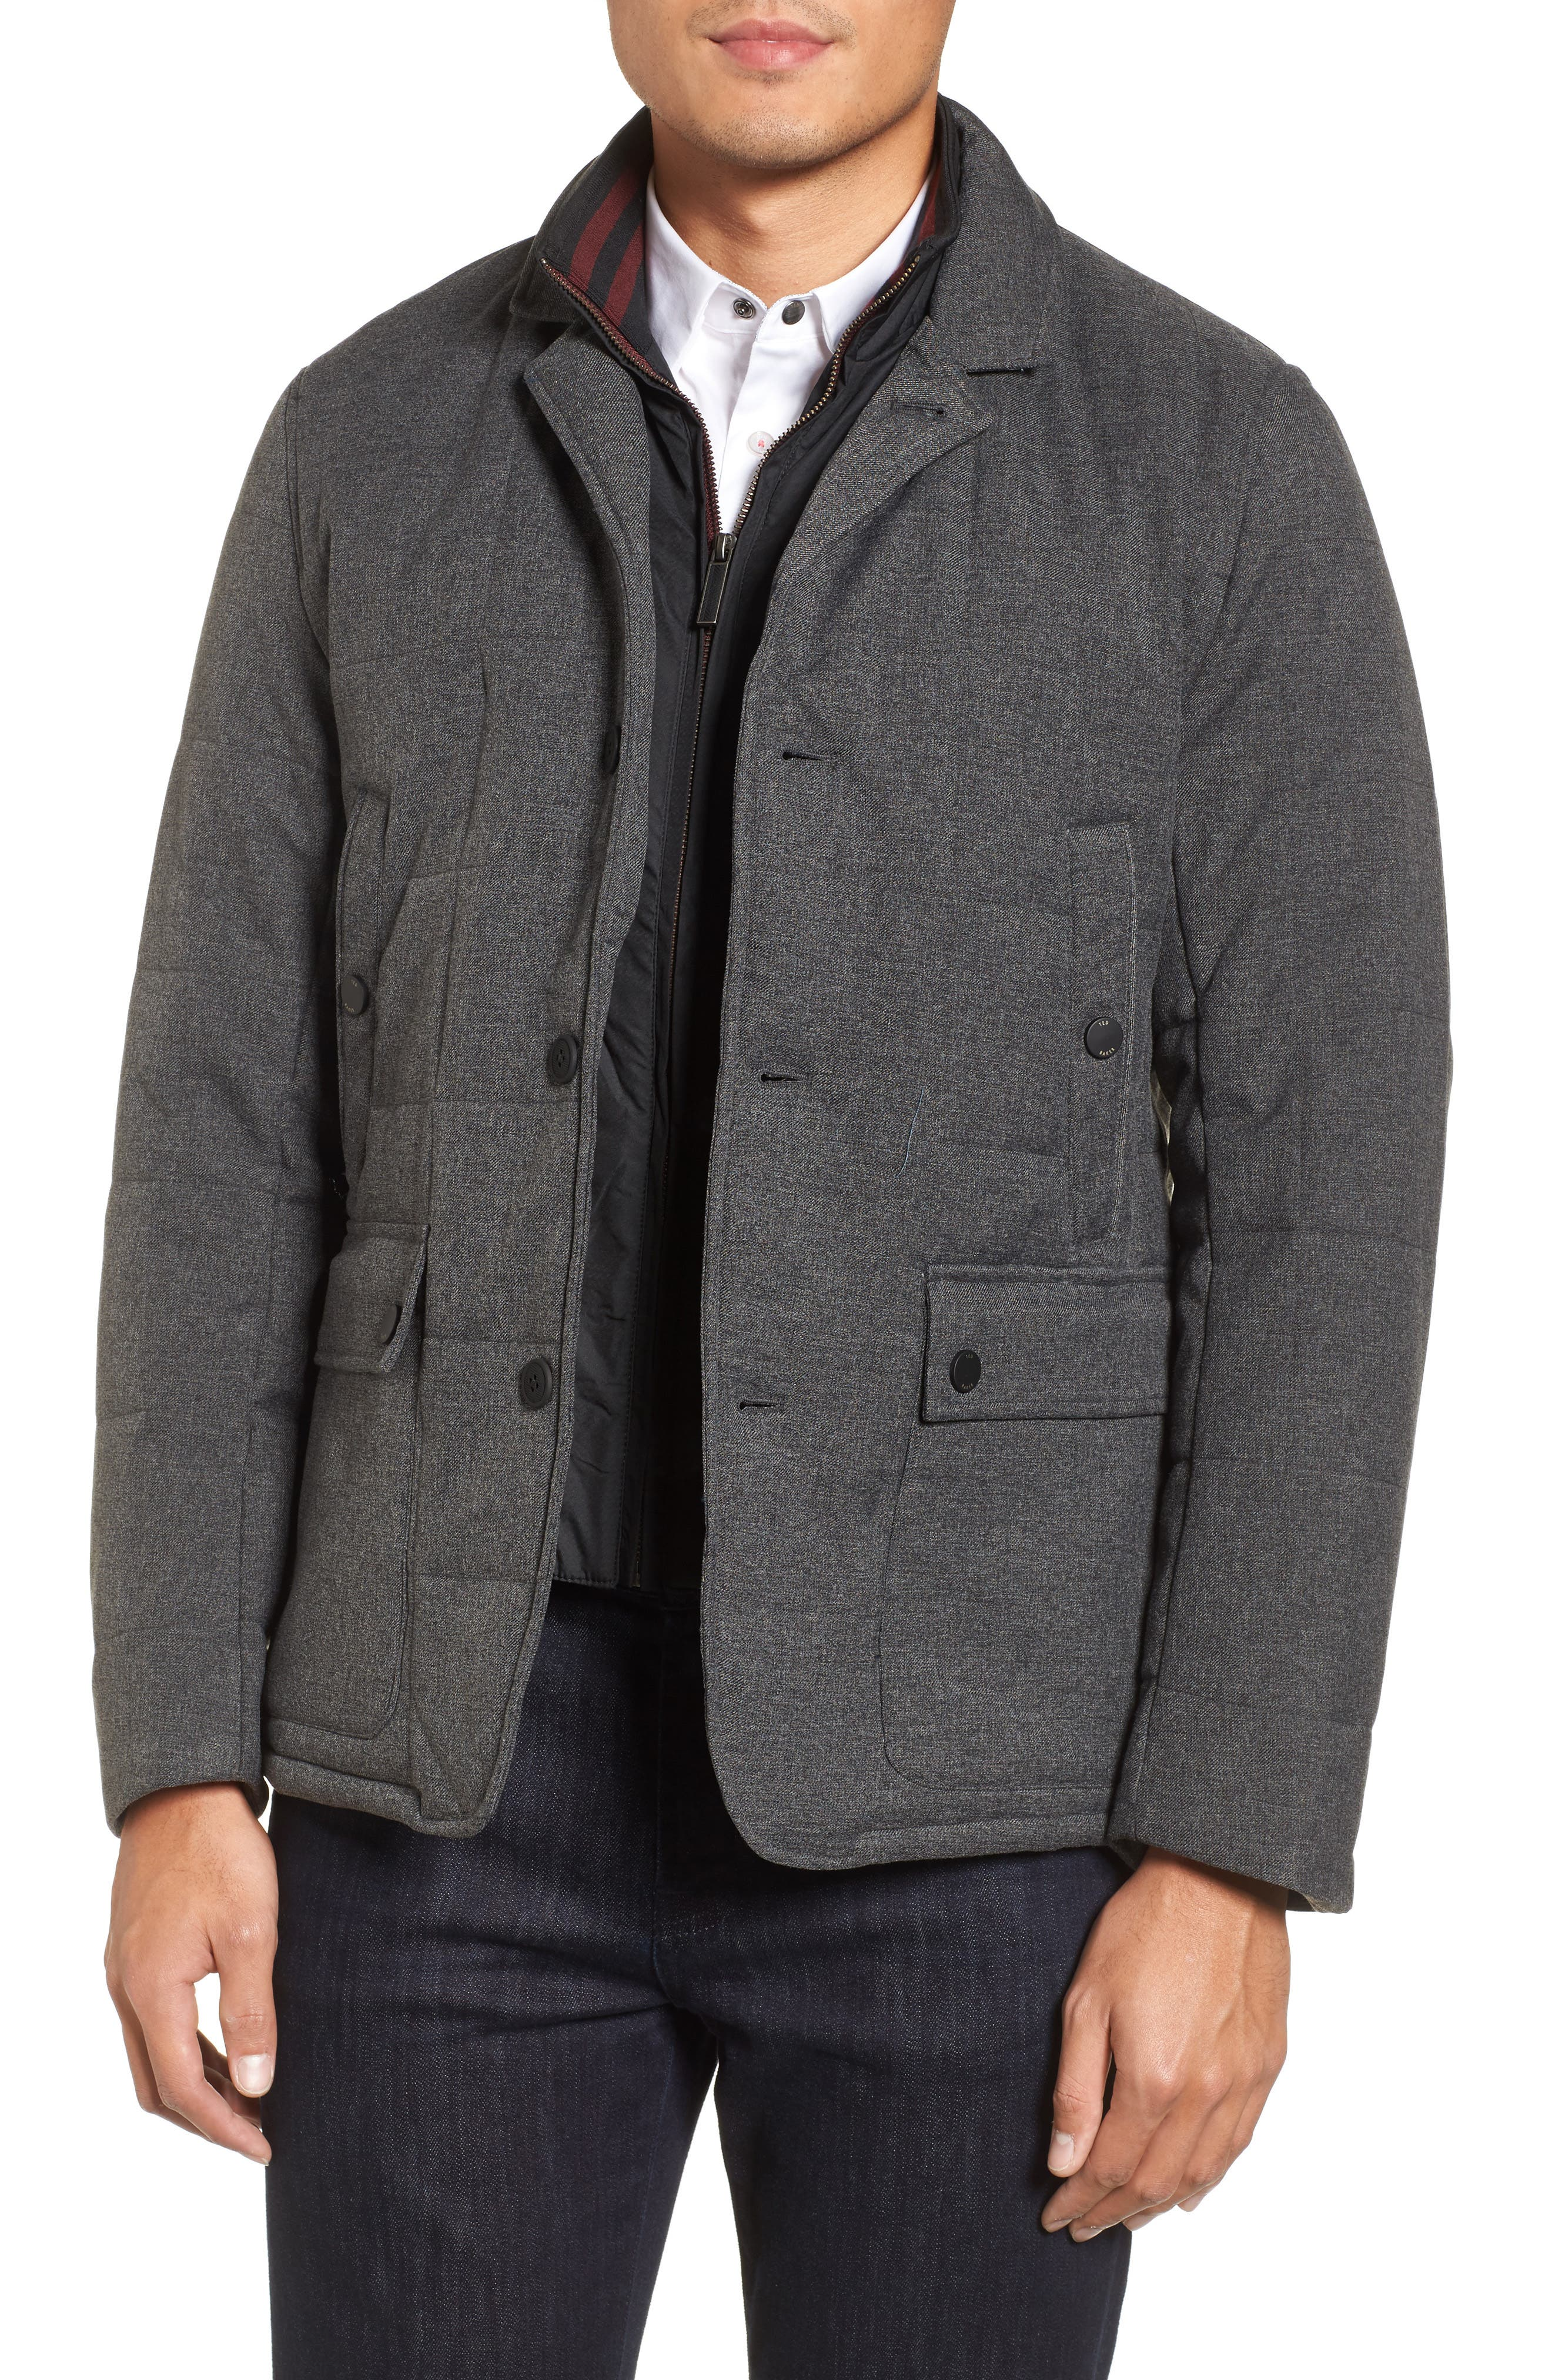 Main Image - Ted Baker London Jaycie Inset Bib Quilted Jacket